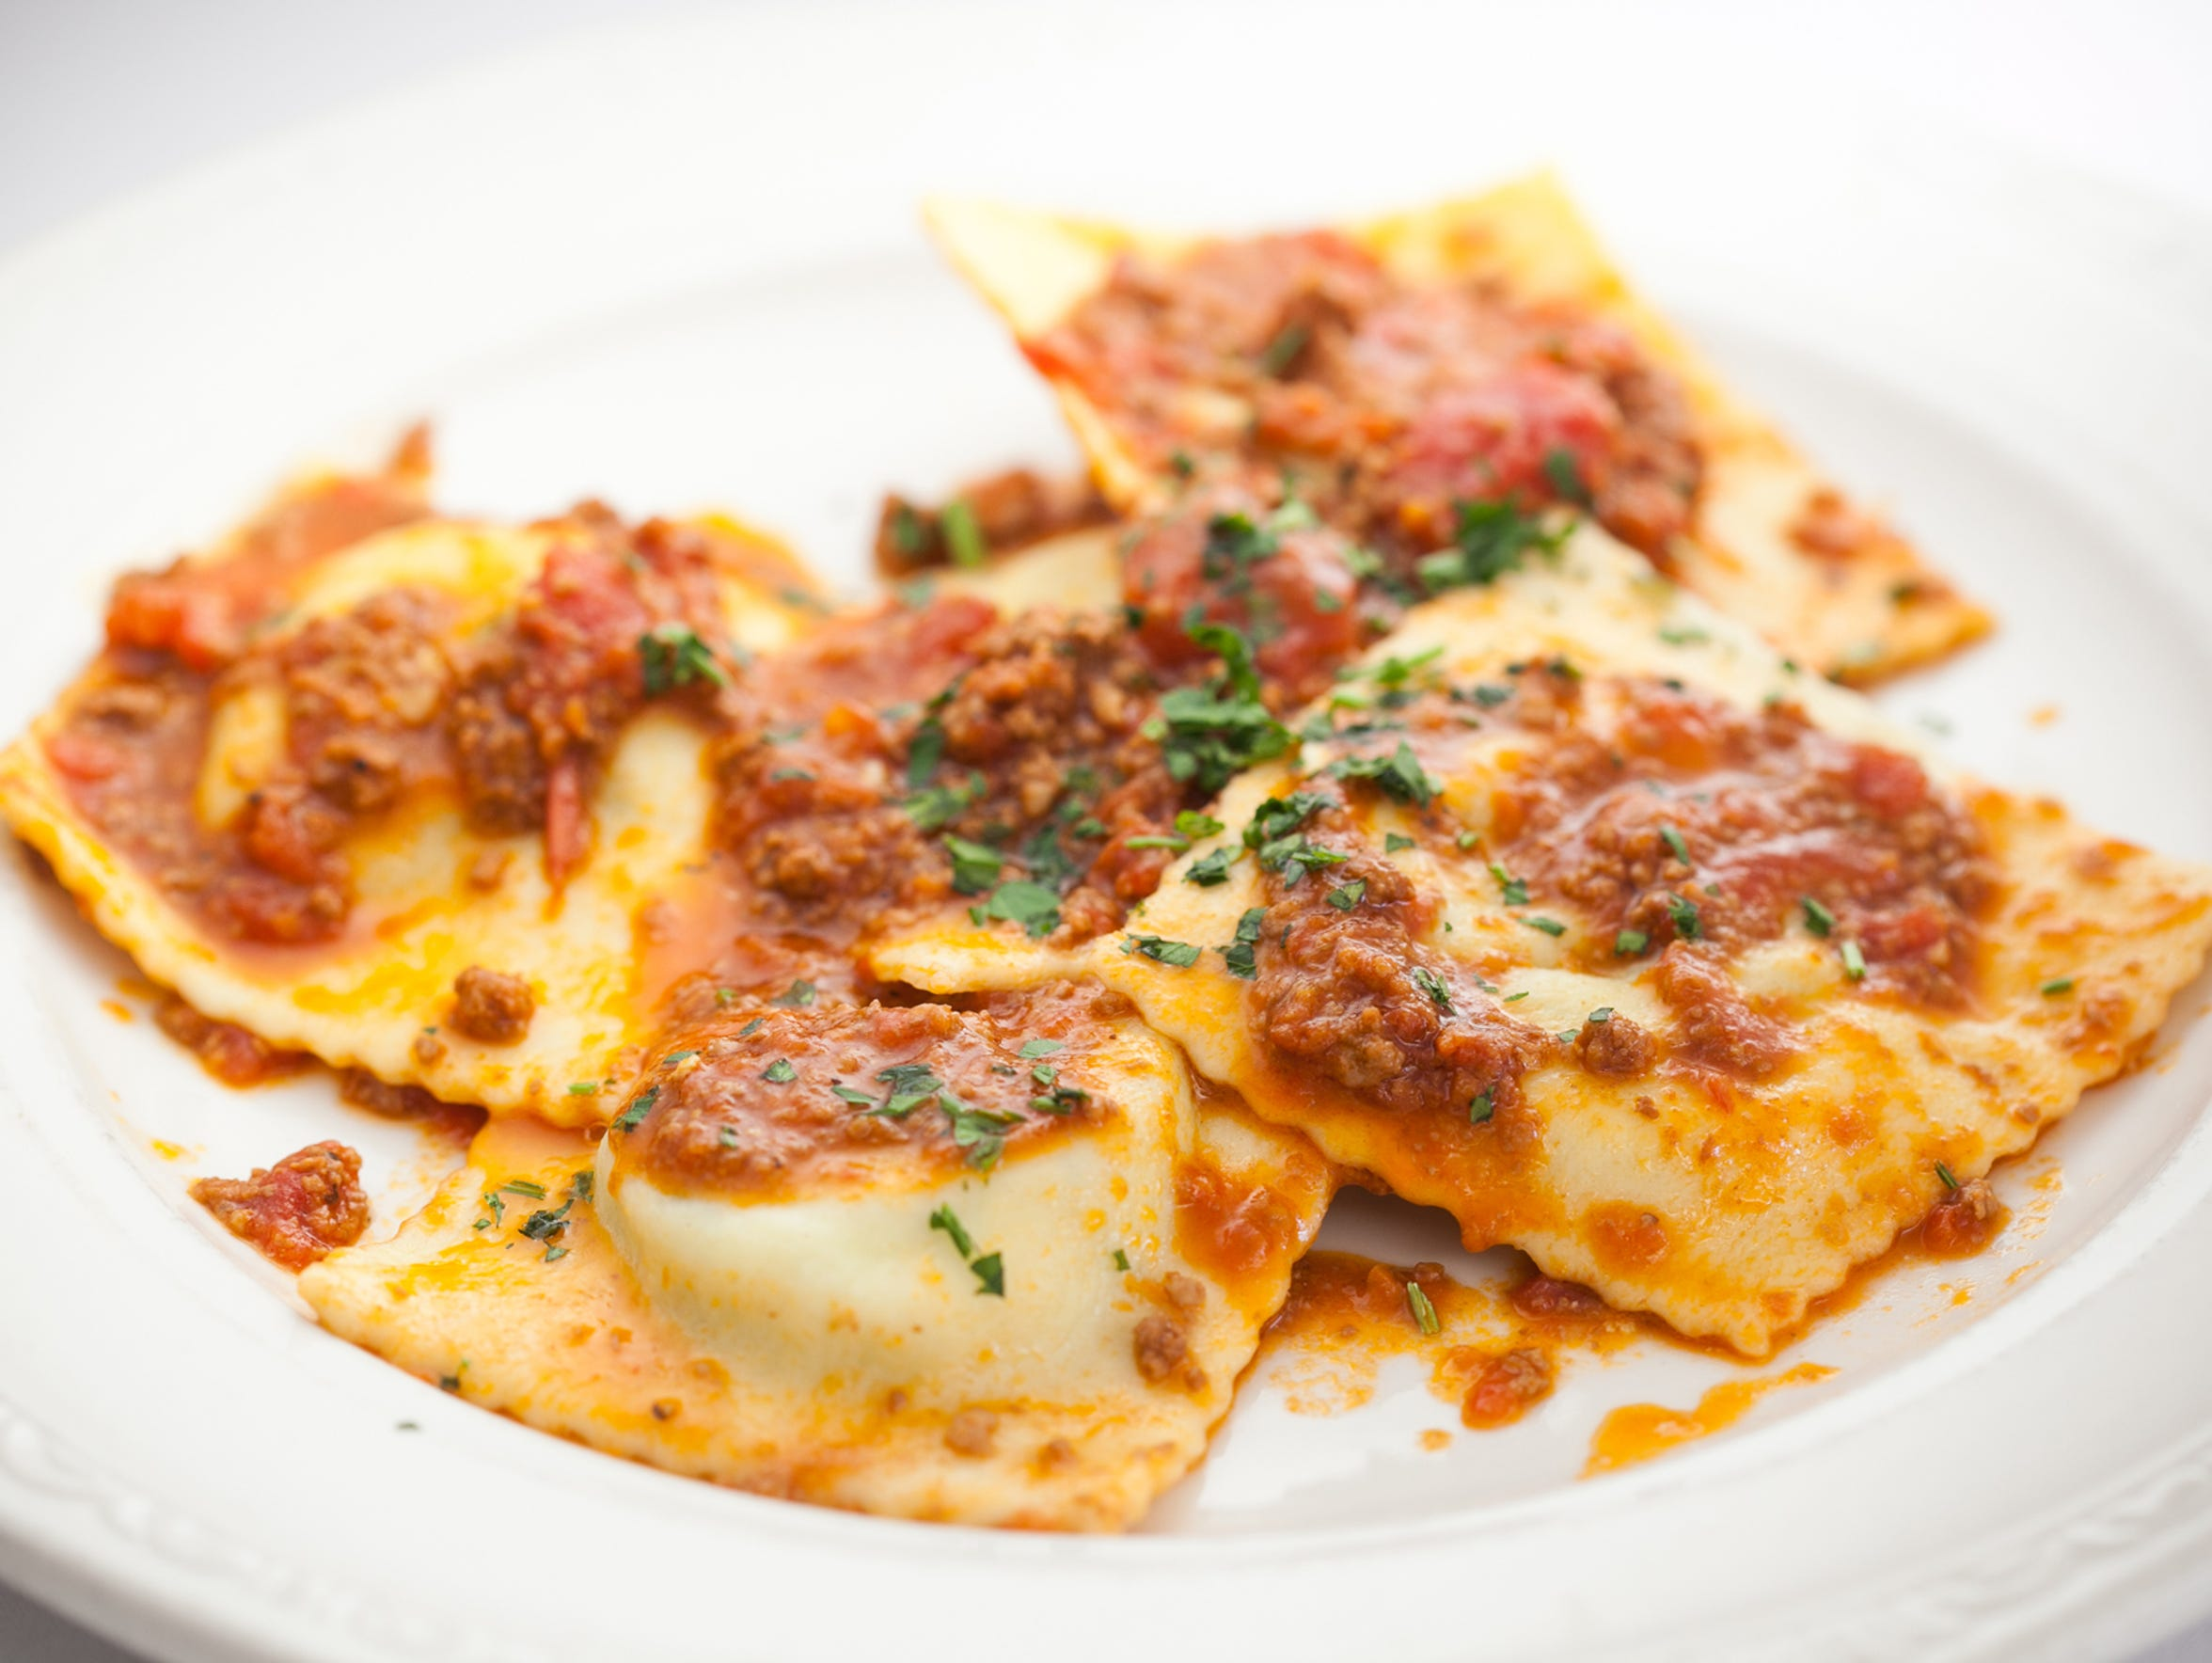 The ravioli with meat sauce at Franco's Italian Caffe in Scottsdale.